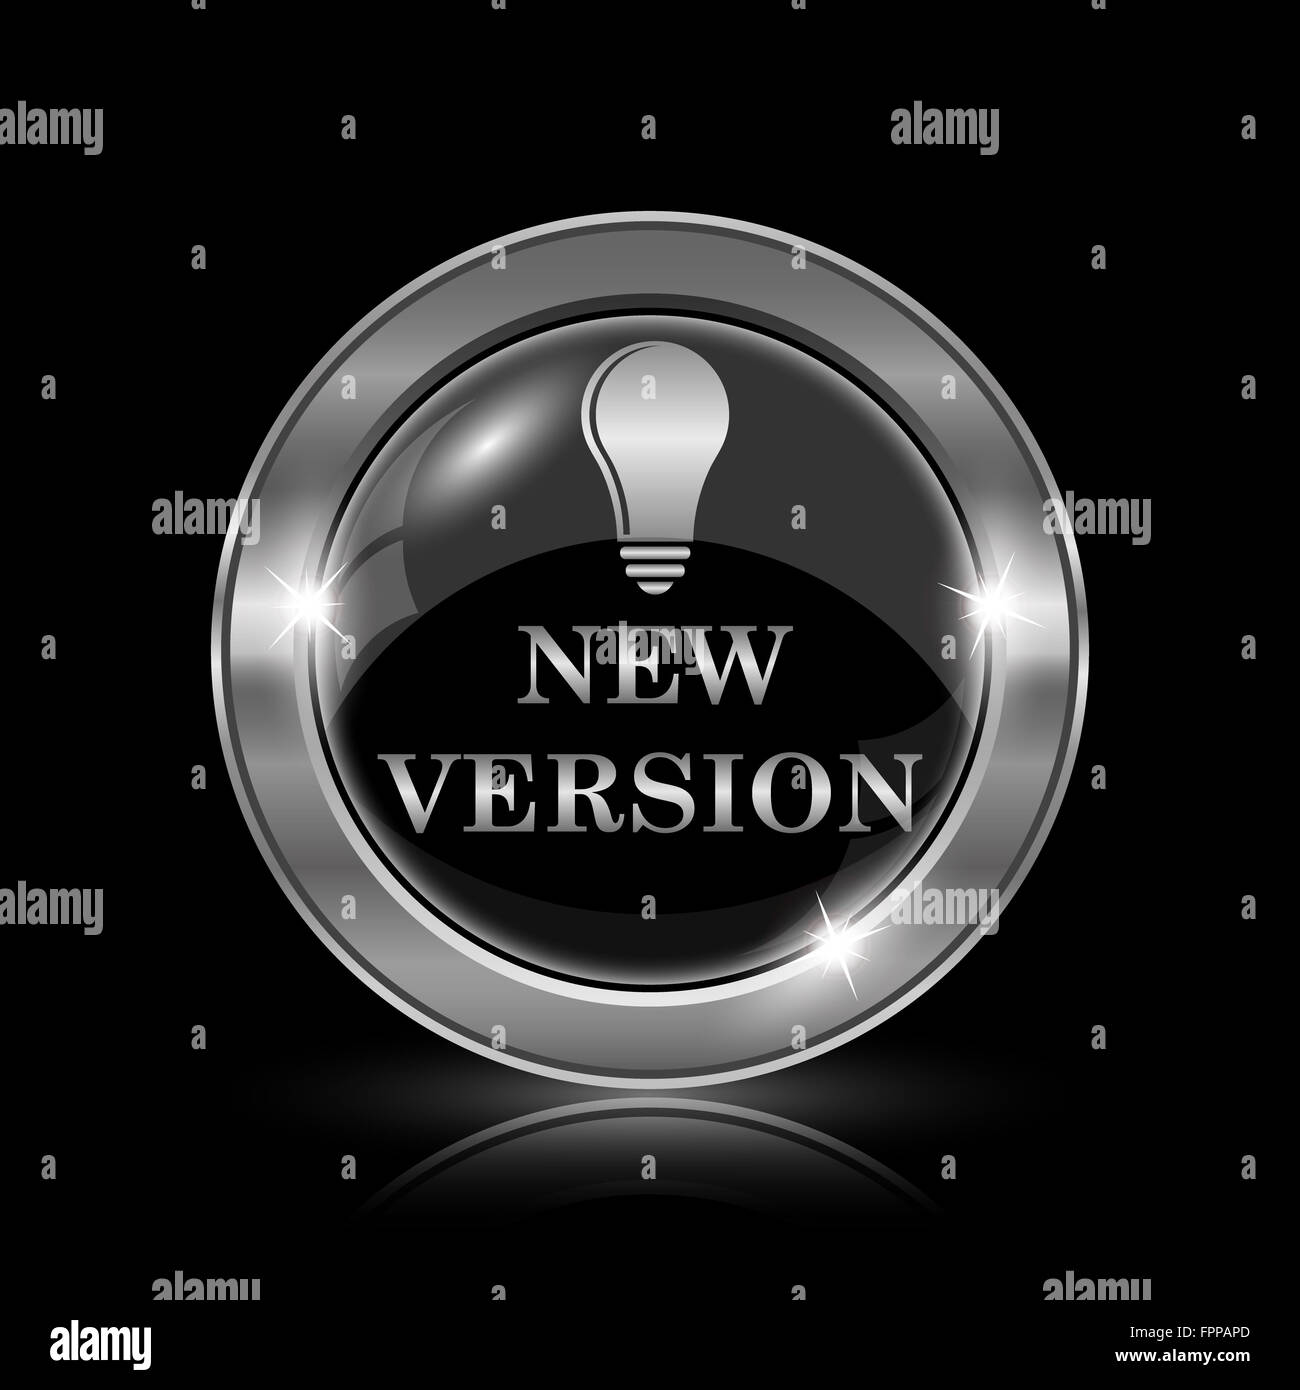 New version icon. Internet button on black background. - Stock Image